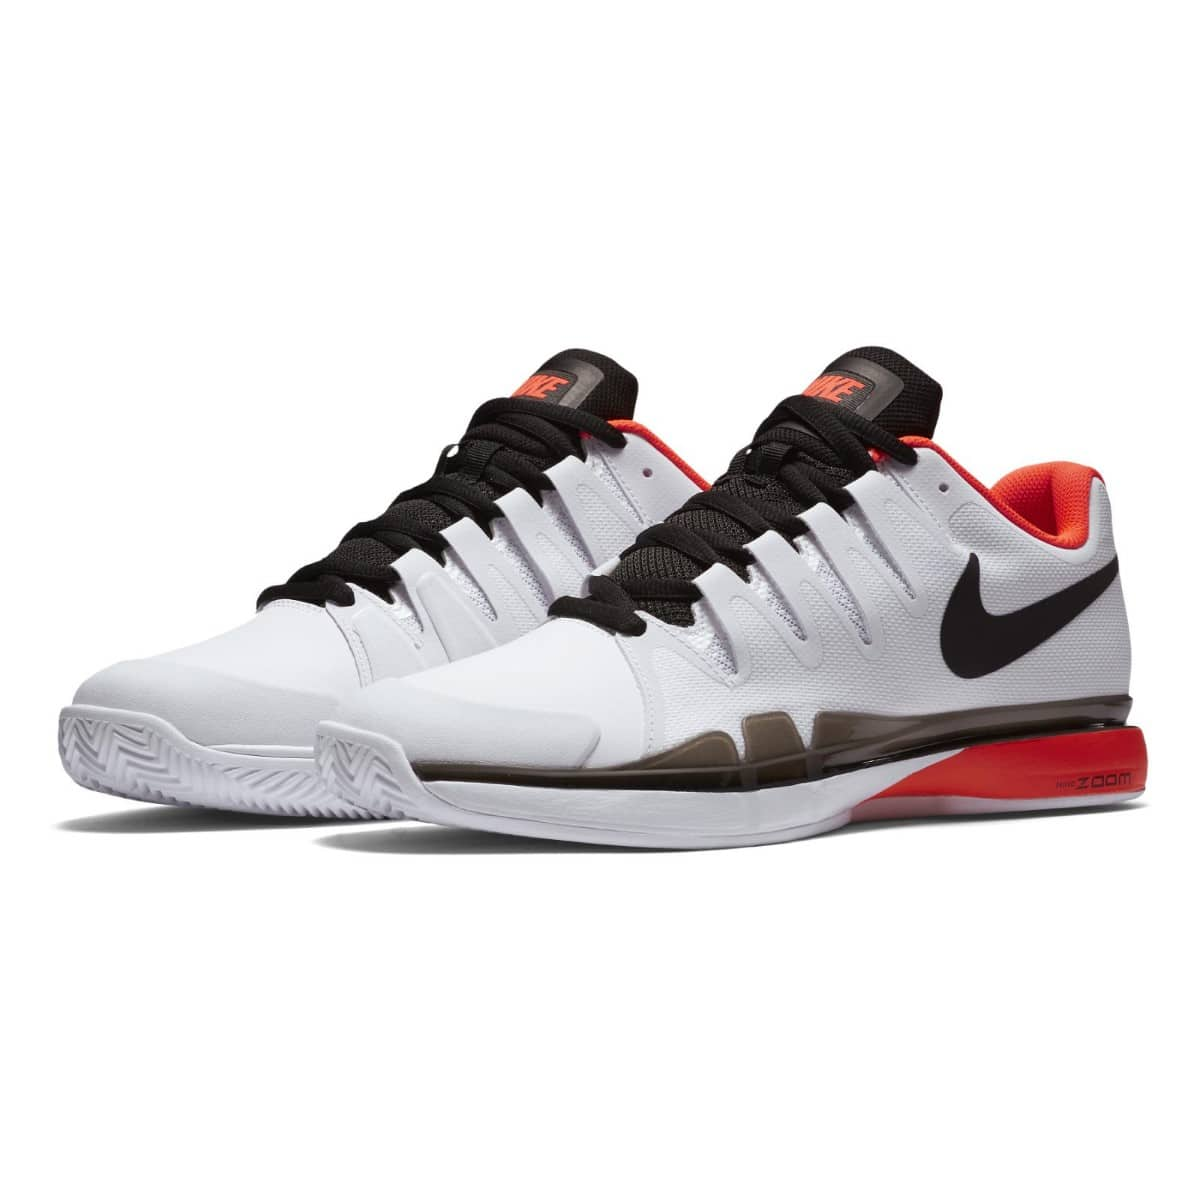 best service 87436 93607 Federer Miami 2016 Nike Shoes